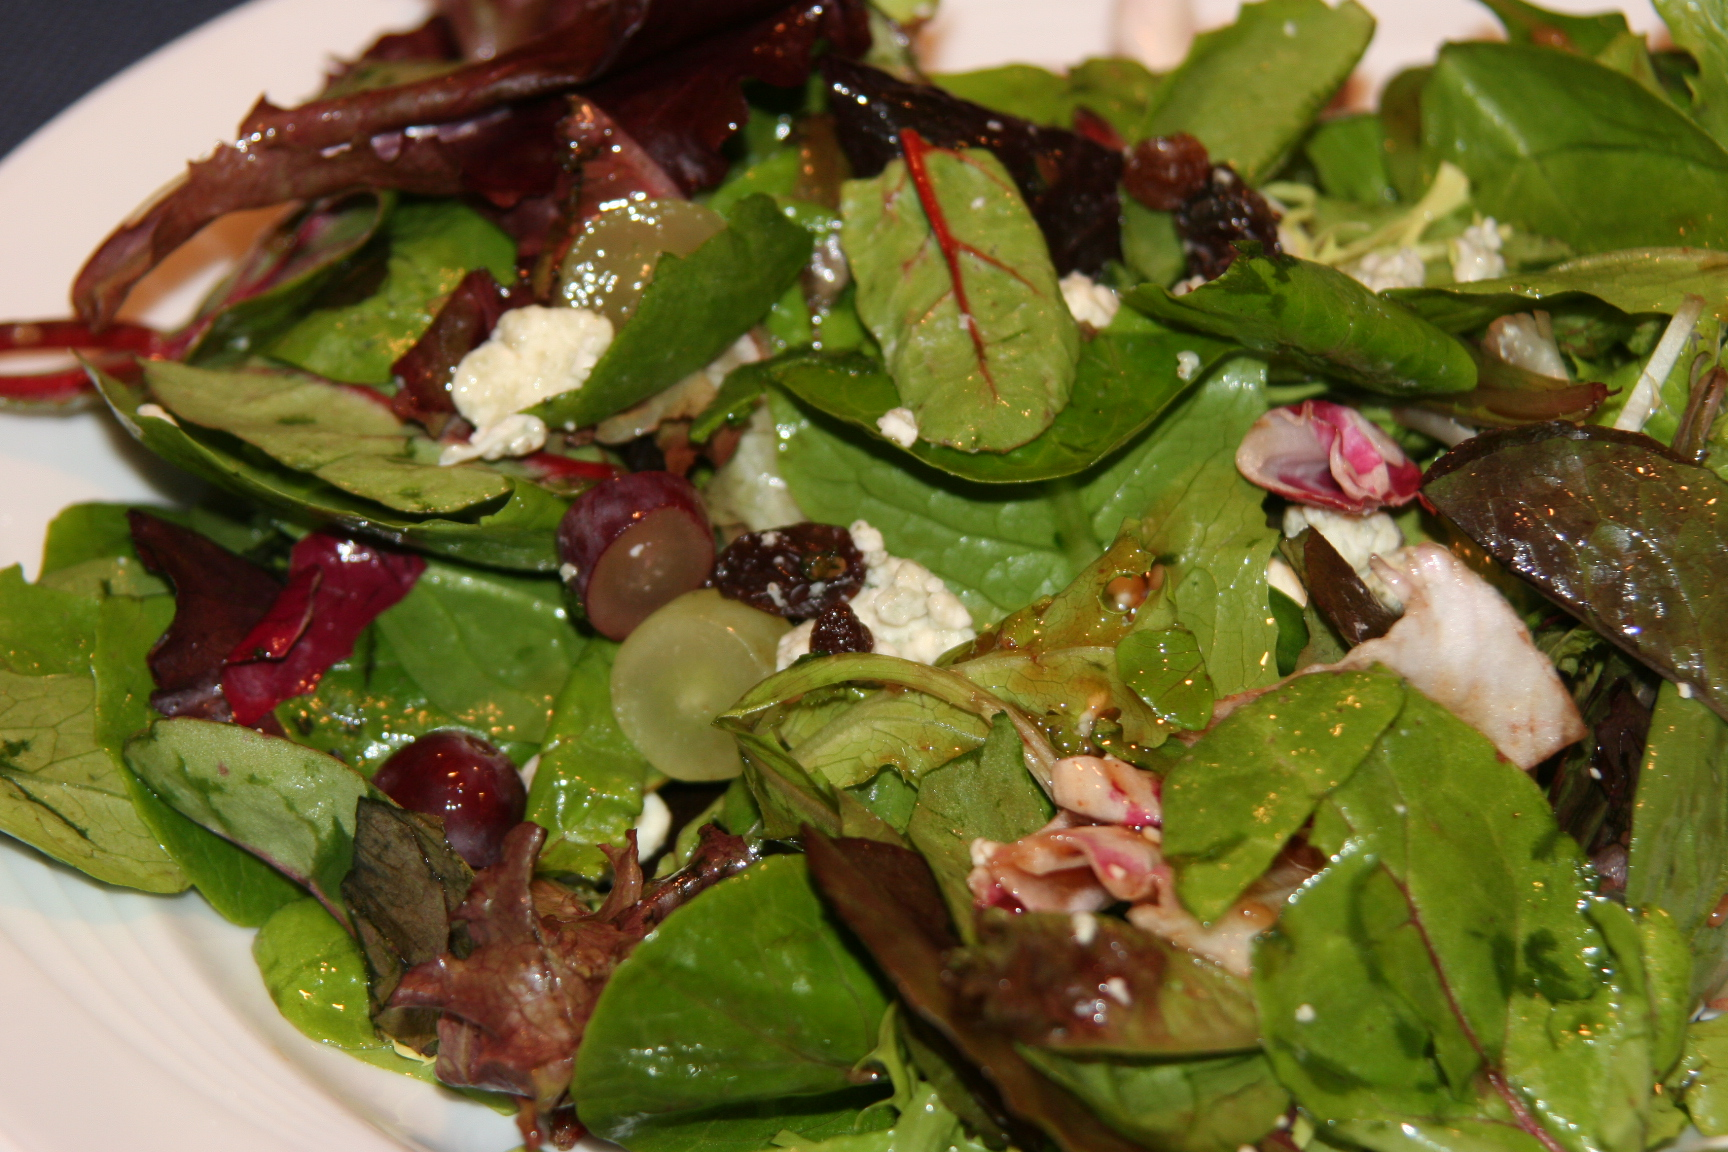 Green salad with grapes and blue cheese